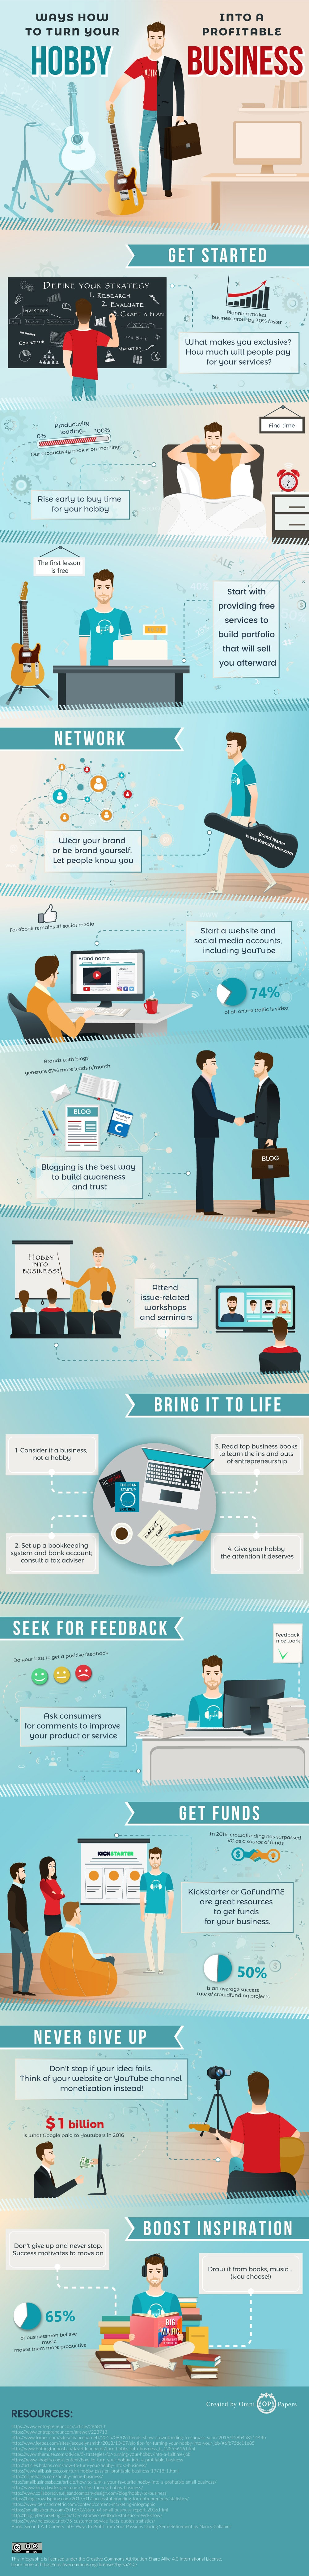 9 Tips to Turn Your Hobby into a Profitable Business [Infographic]